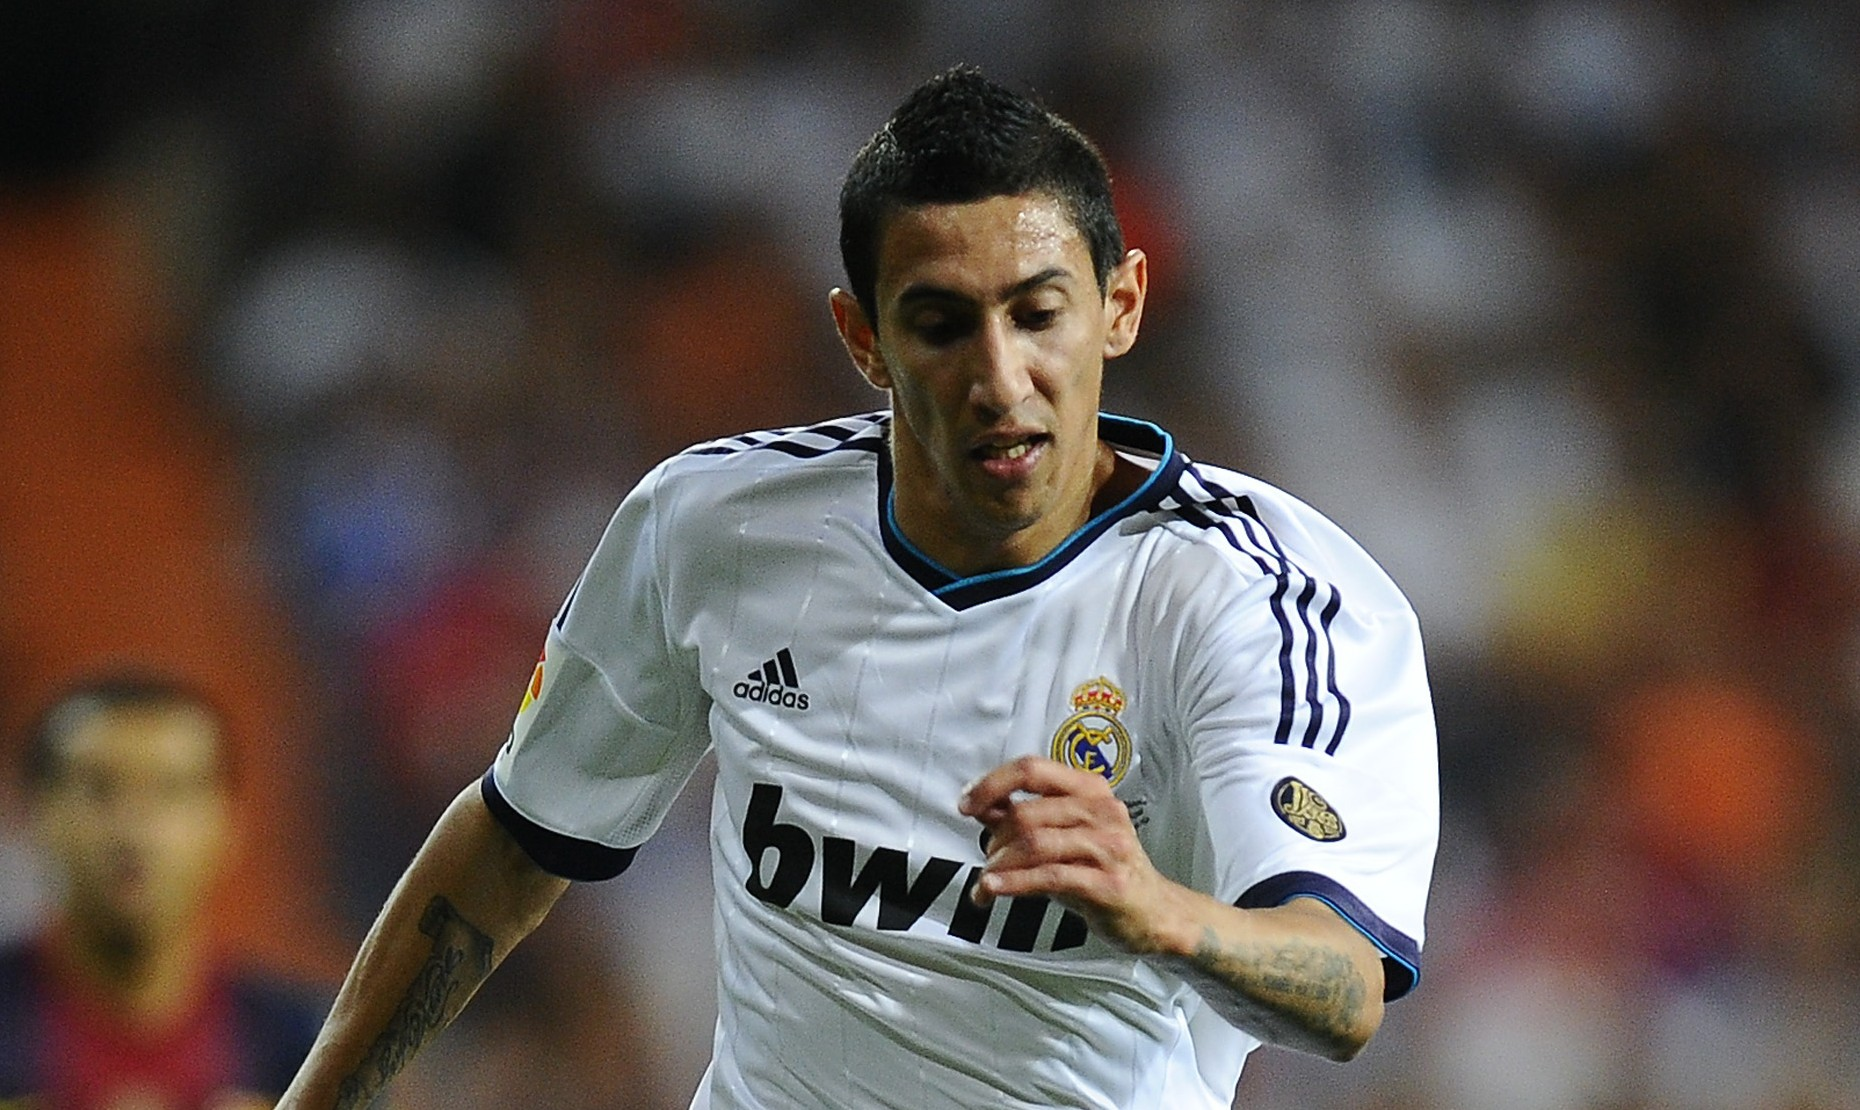 Manchester United 'eye Angel di Maria as Luis Nani replacement'